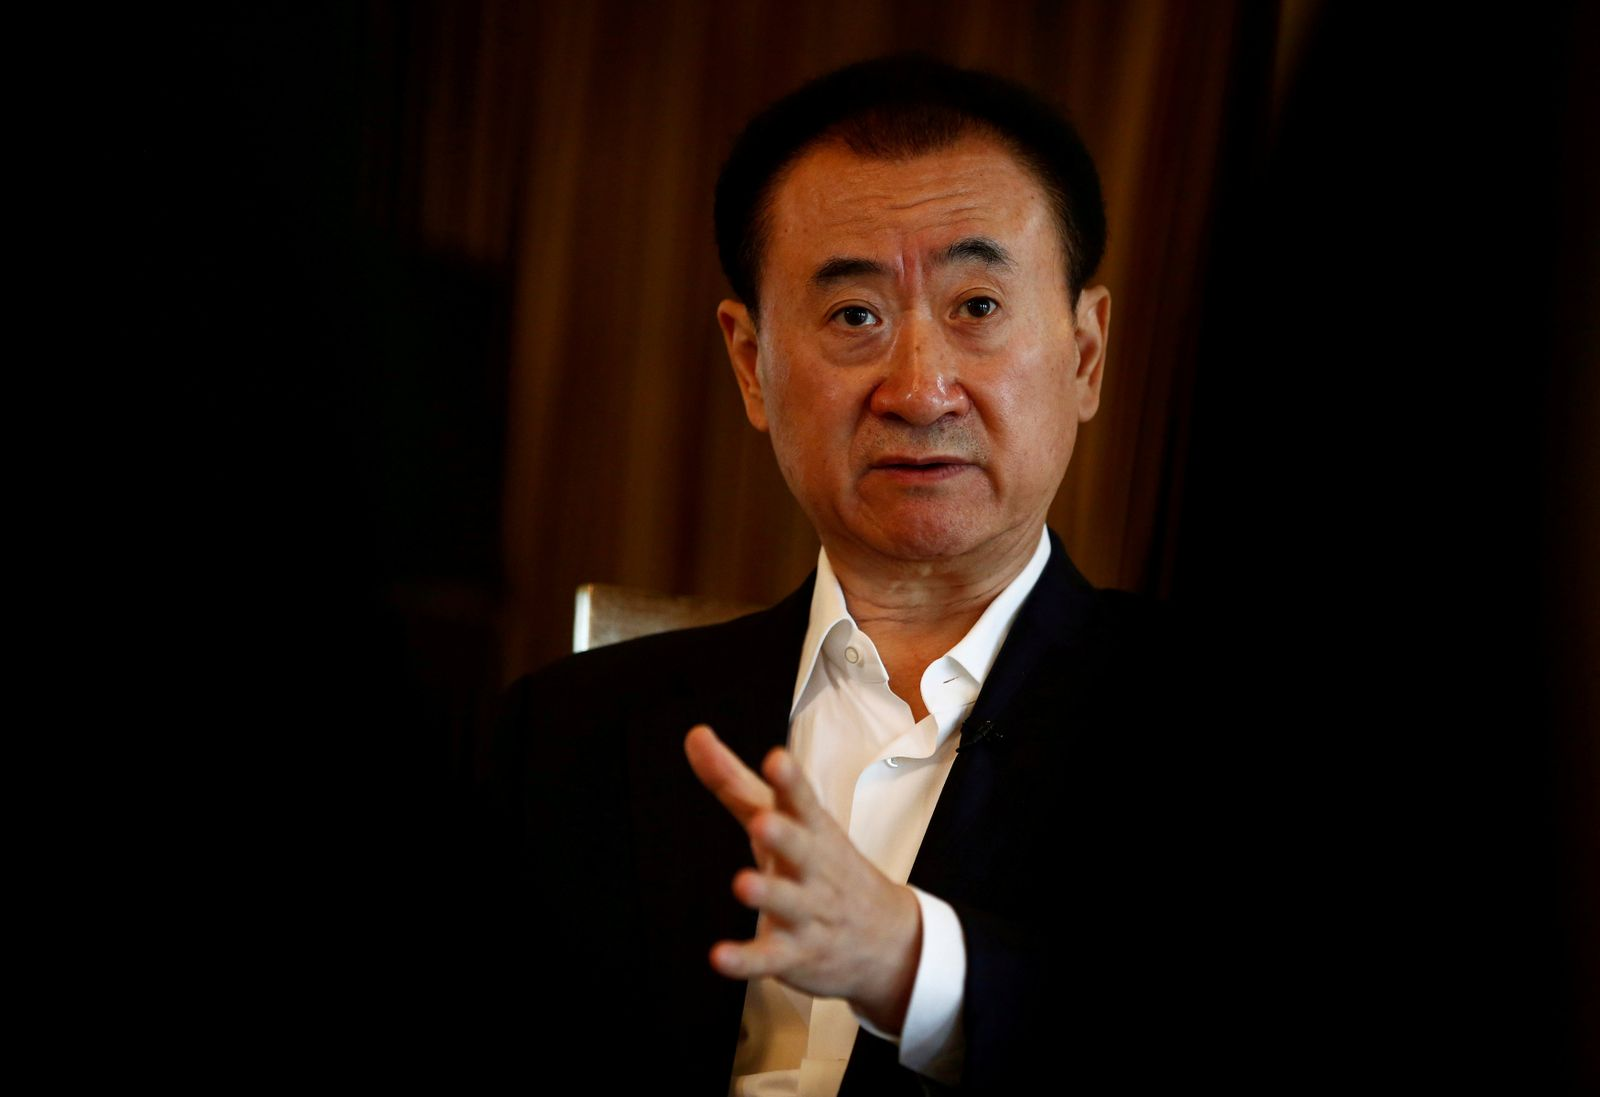 Wang Jianlin, chairman of the Wanda Group, speaks during an interview in Beijing